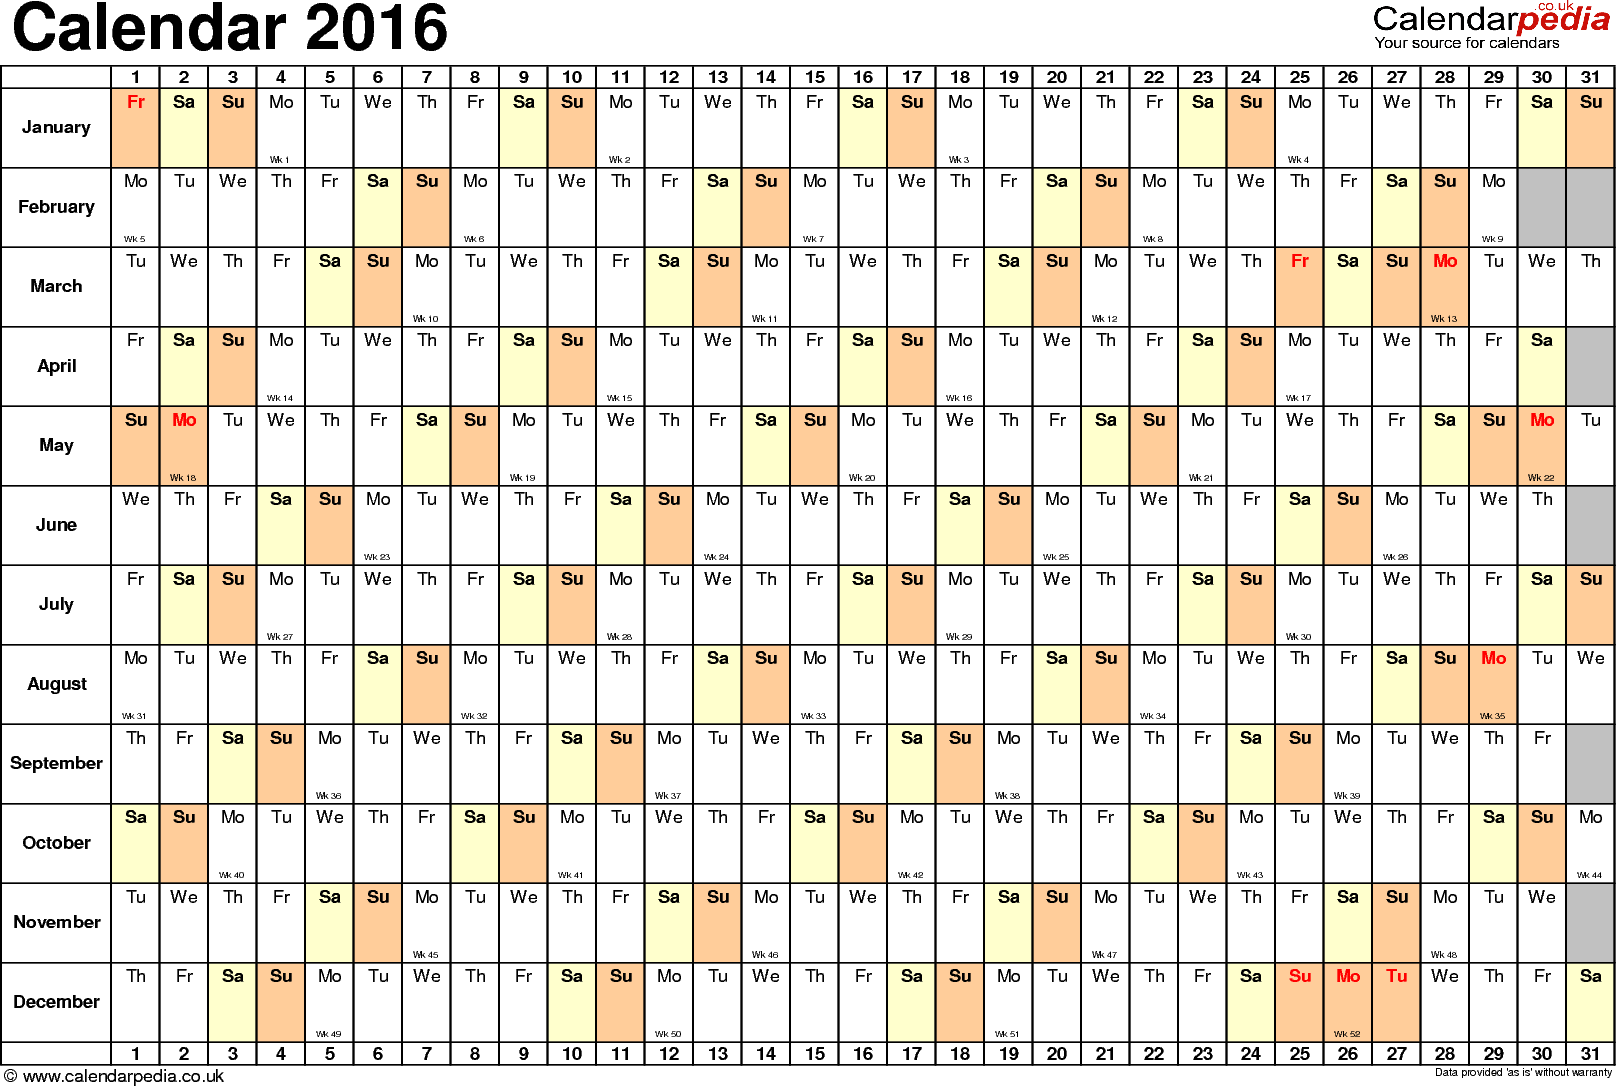 Template 6: Yearly calendar 2016 as Word template, landscape orientation, 1 page, linear (days horizontally, months vertically), with UK bank holidays and week numbers